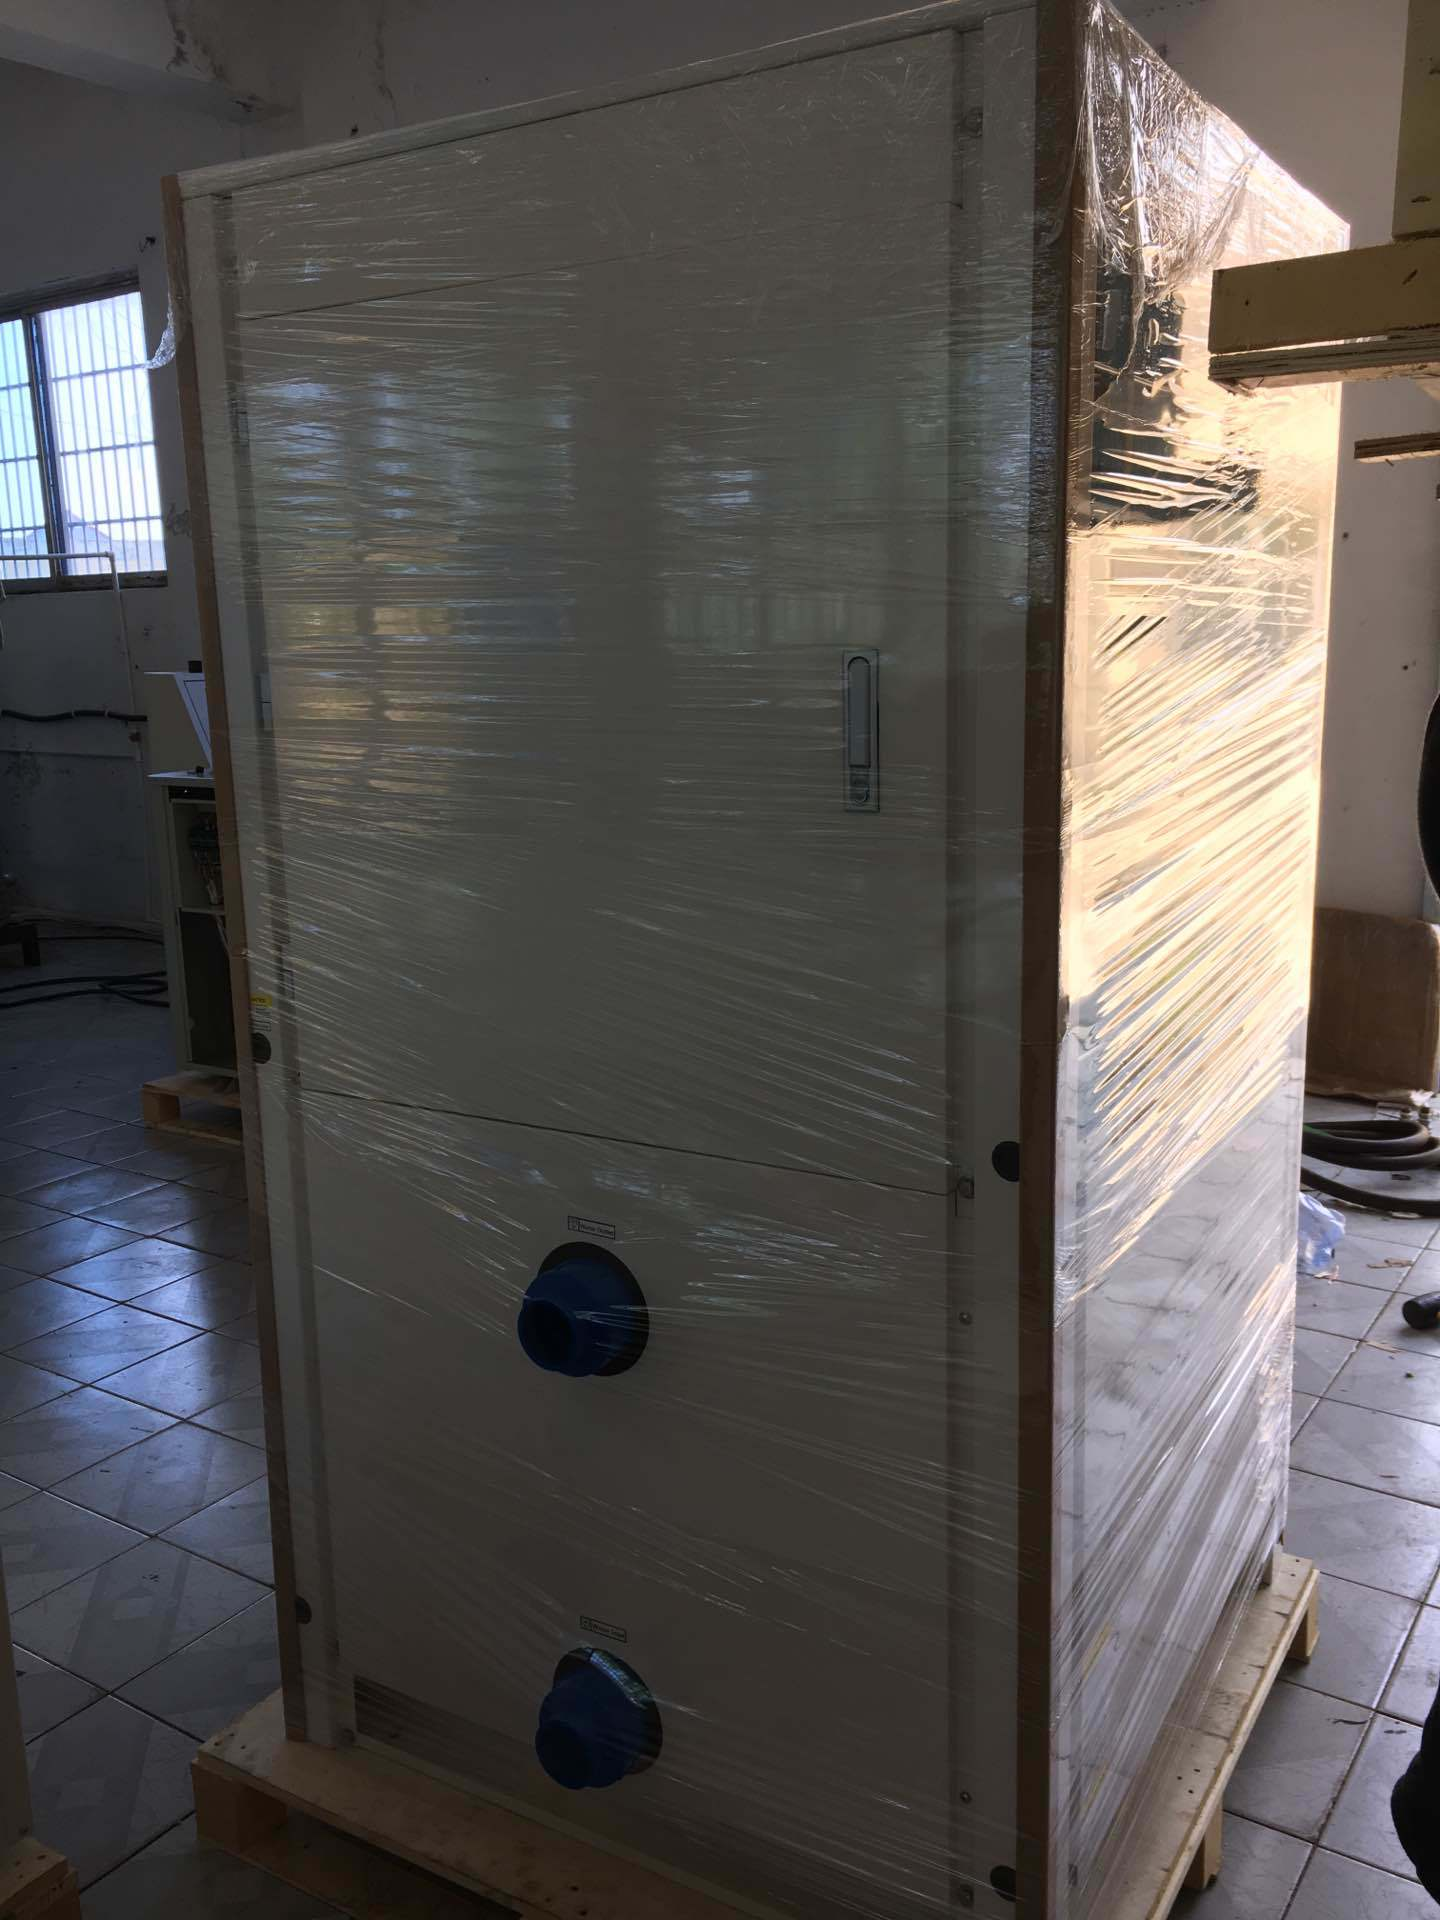 Commercial Air Source Heat Pump for Hot Water for Hotel